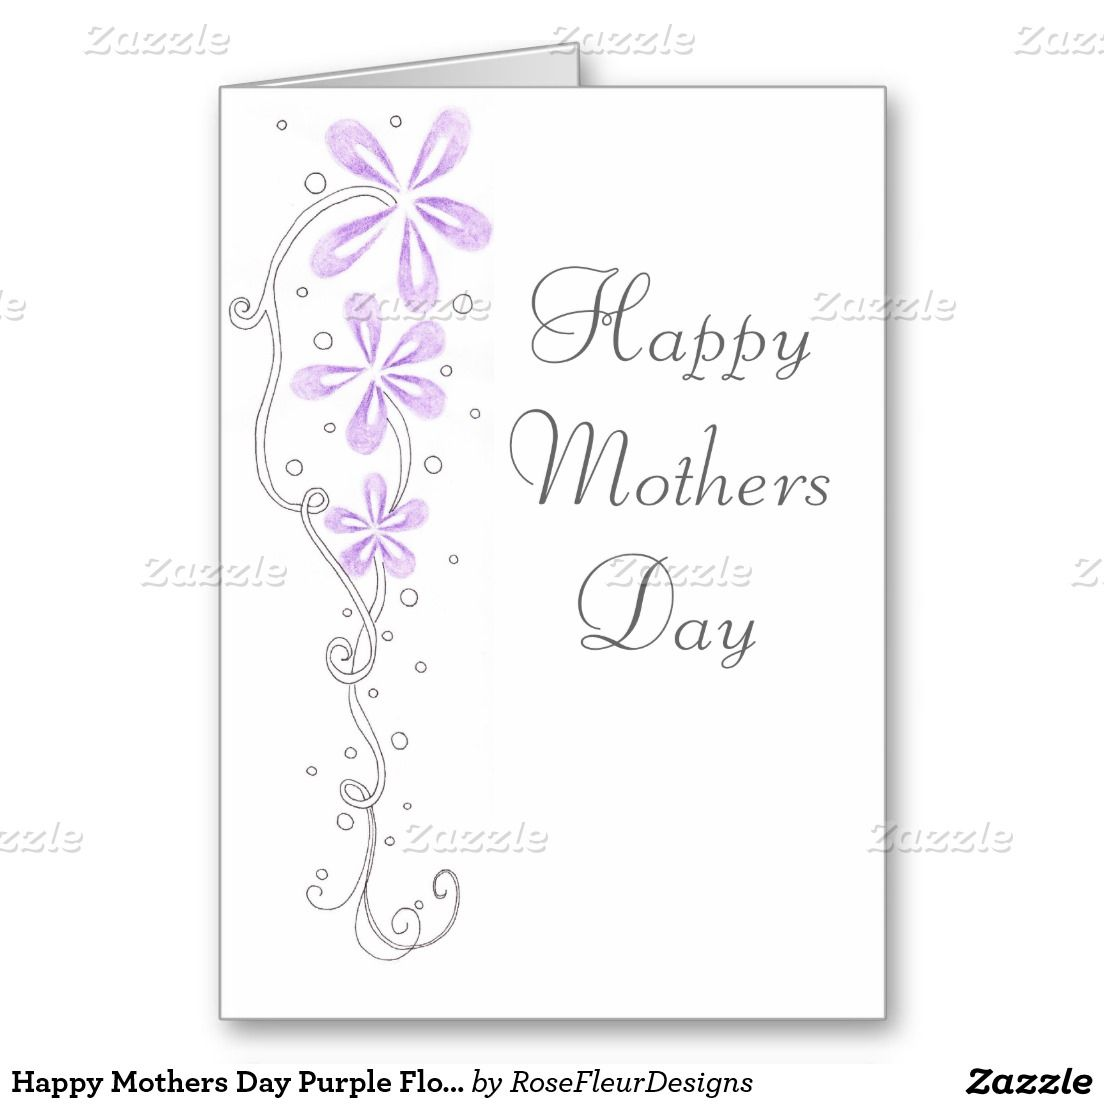 Happy Mothers Day Purple Flowers Card